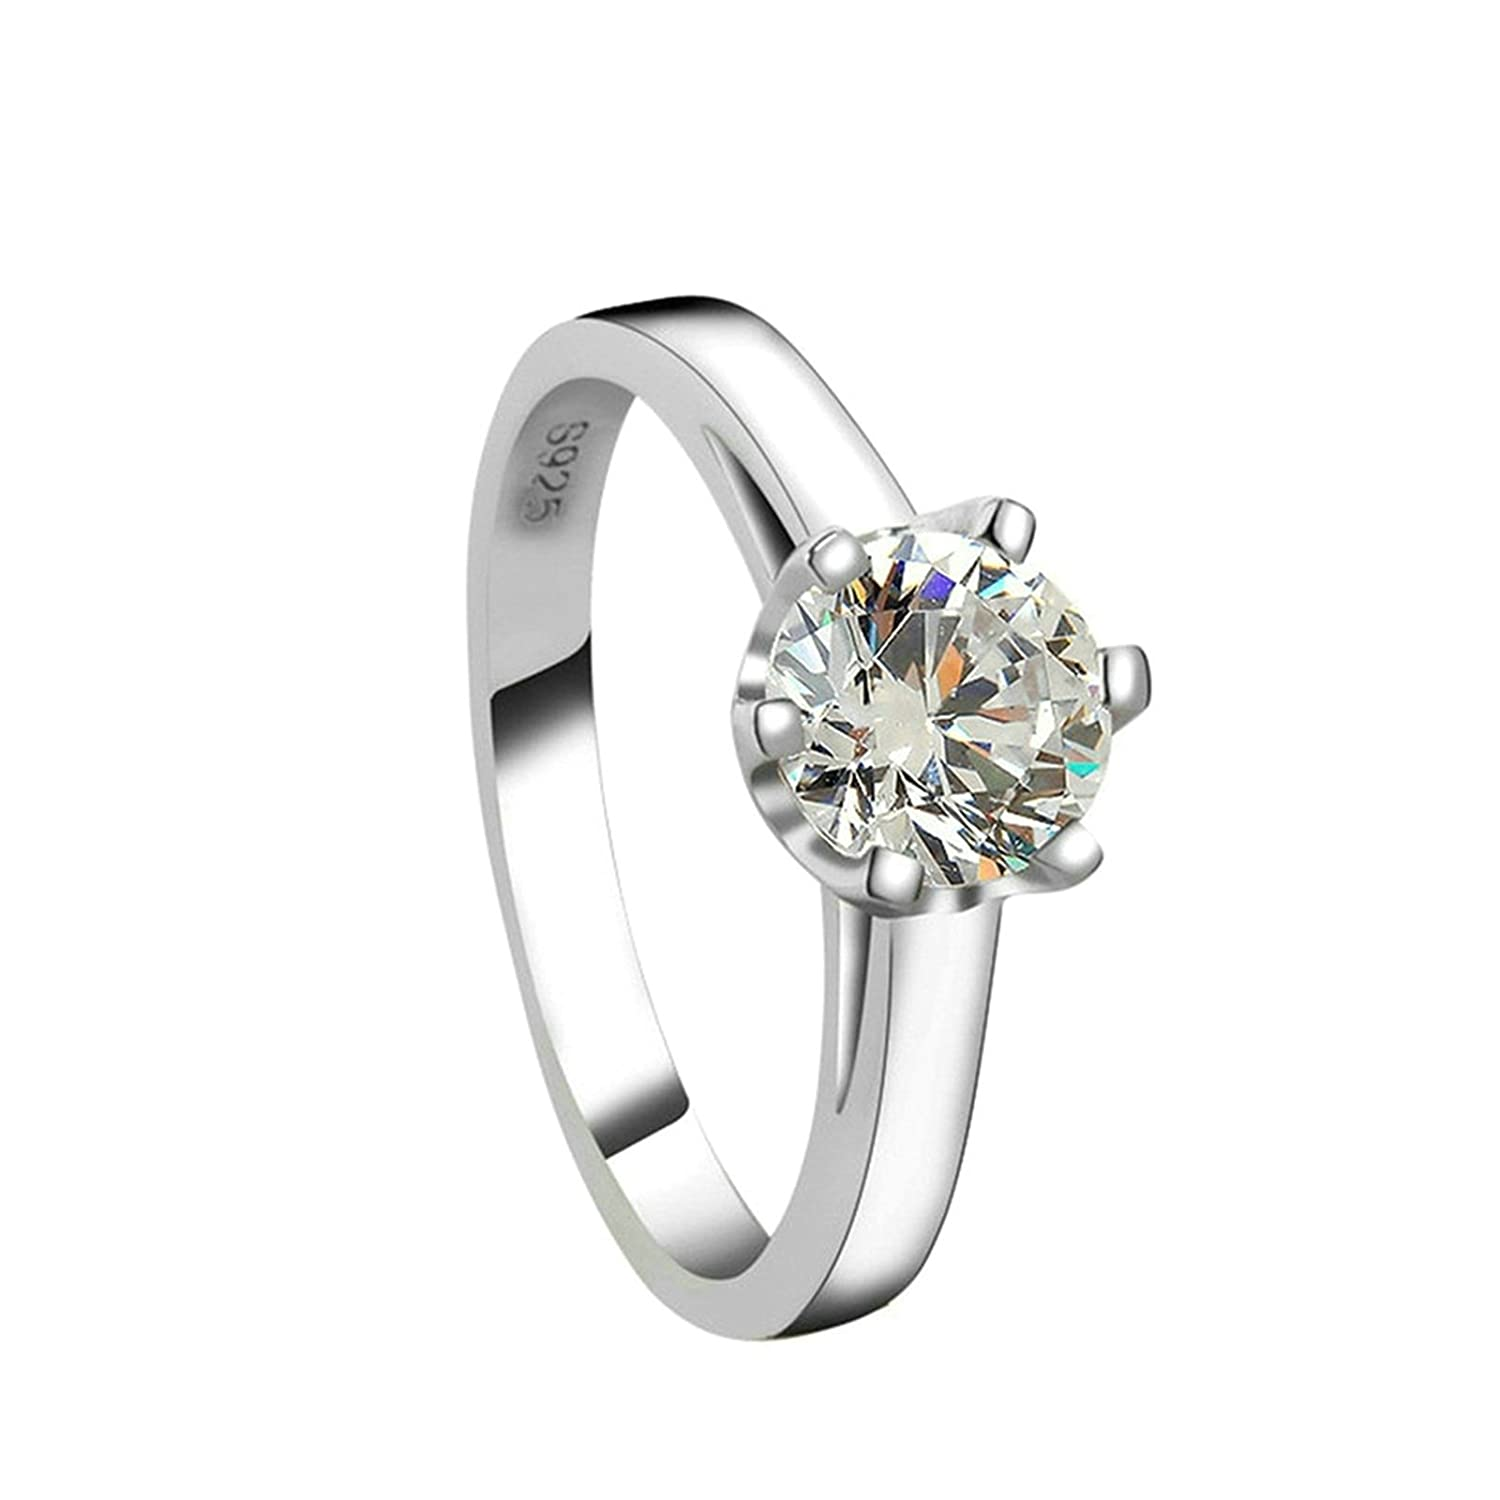 Womens Ladies Silver Plated Wedding Bands Promise Ring 6-prongs Round White Crystal US 5 Aooaz Jewelry